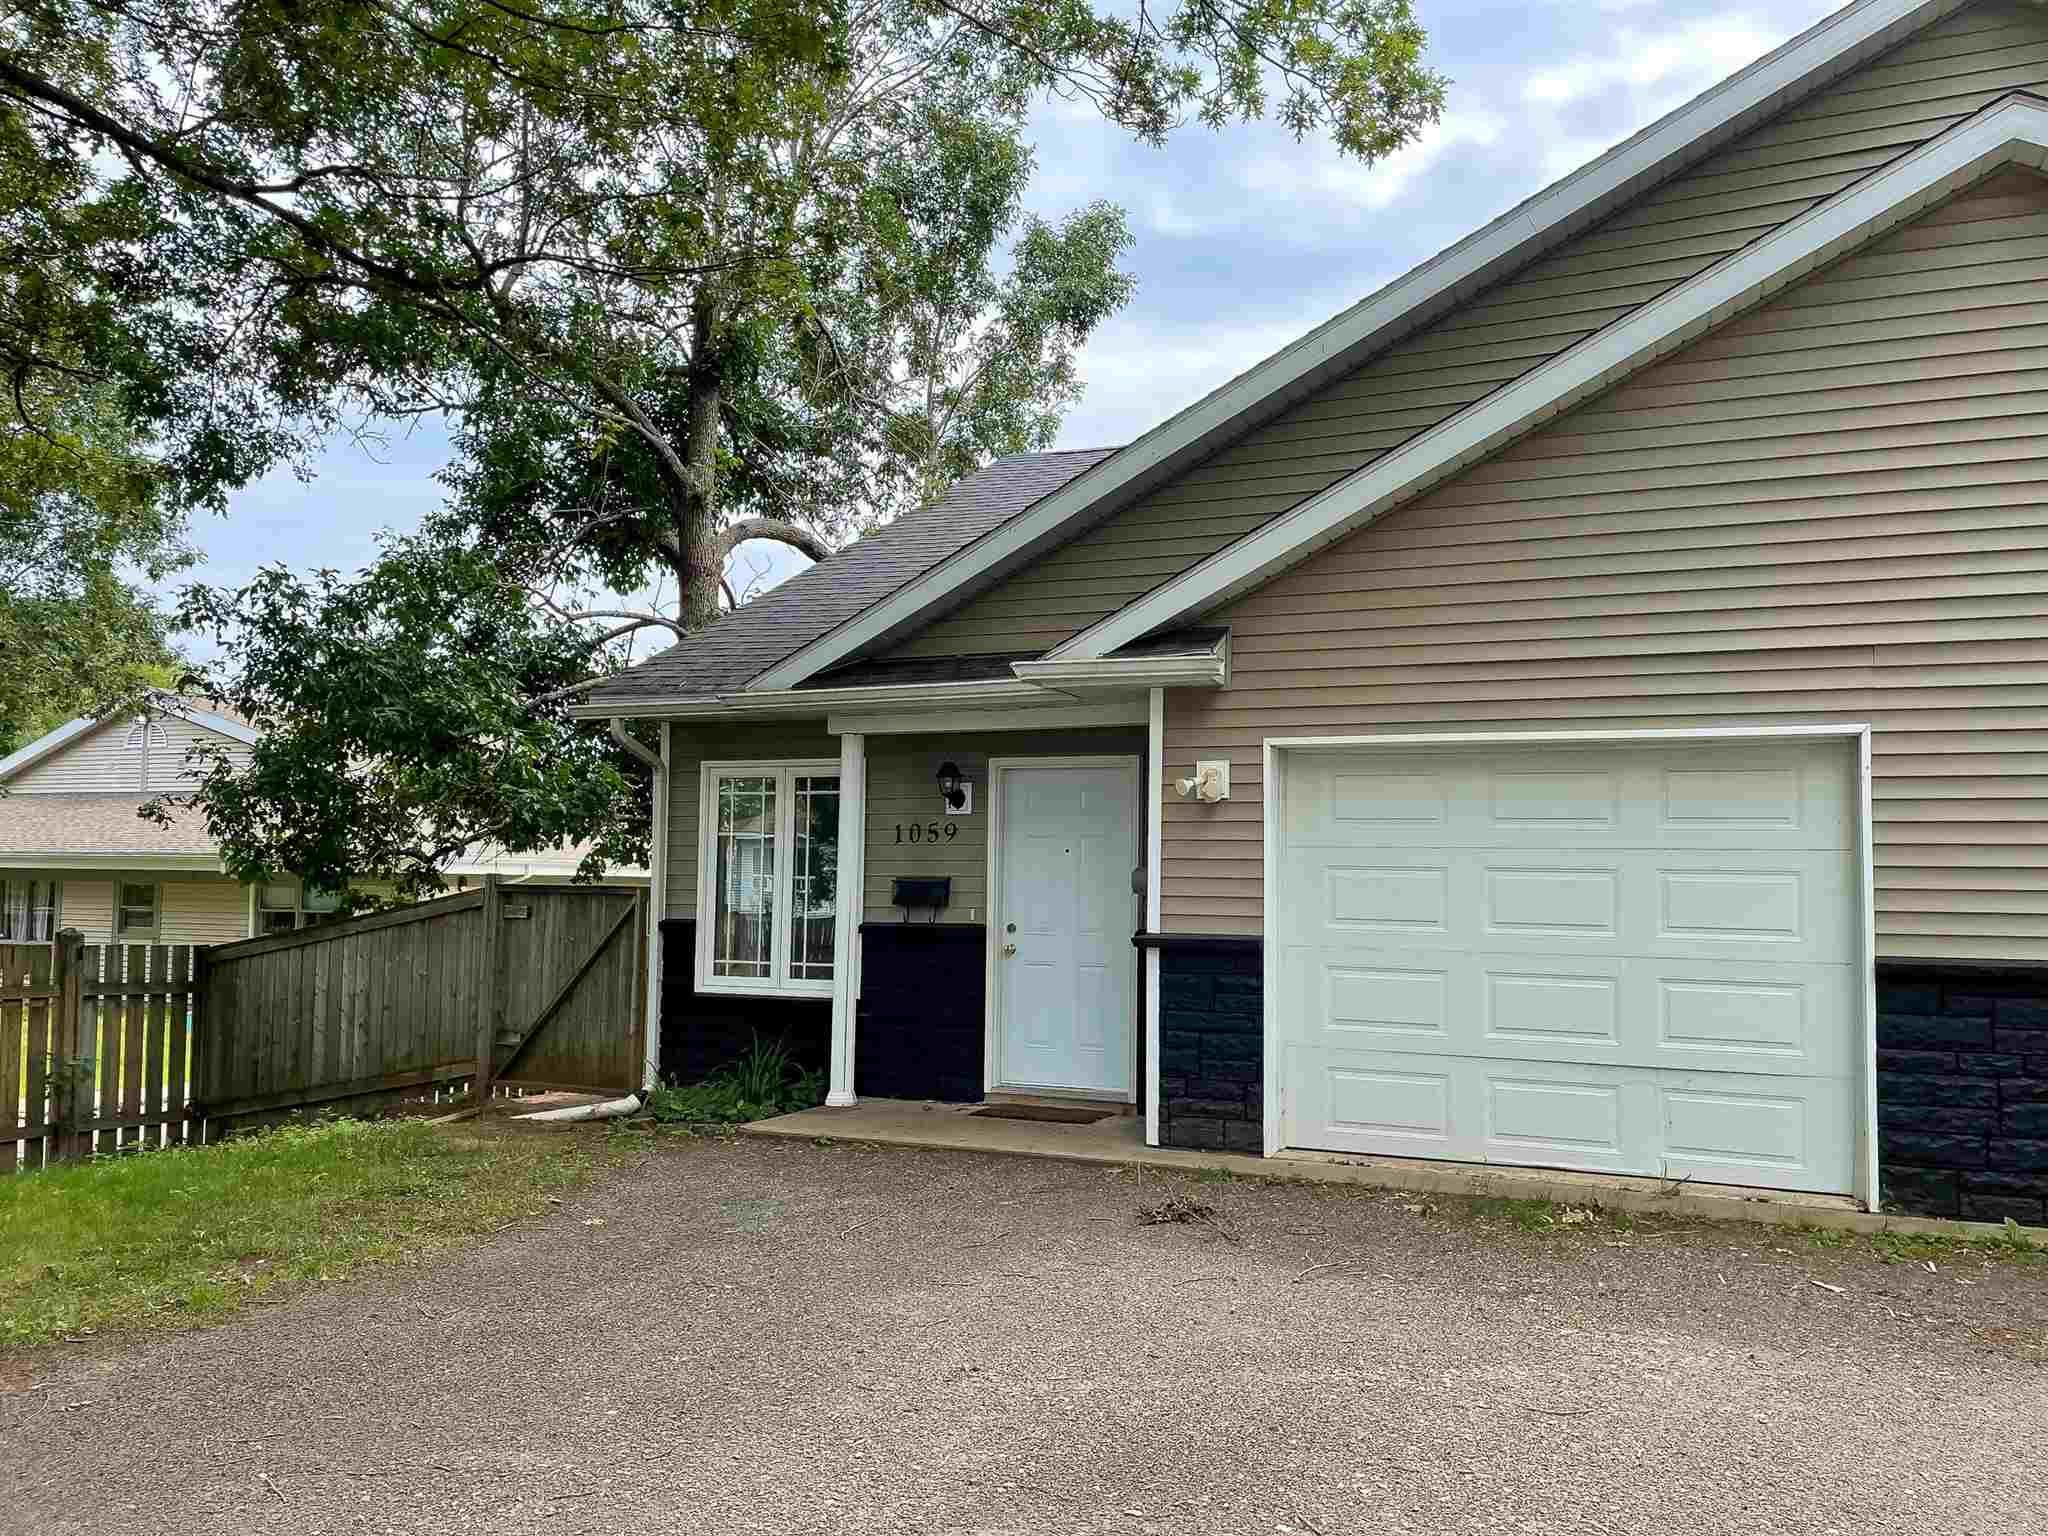 Main Photo: 1059 Scott Drive in North Kentville: 404-Kings County Residential for sale (Annapolis Valley)  : MLS®# 202117956